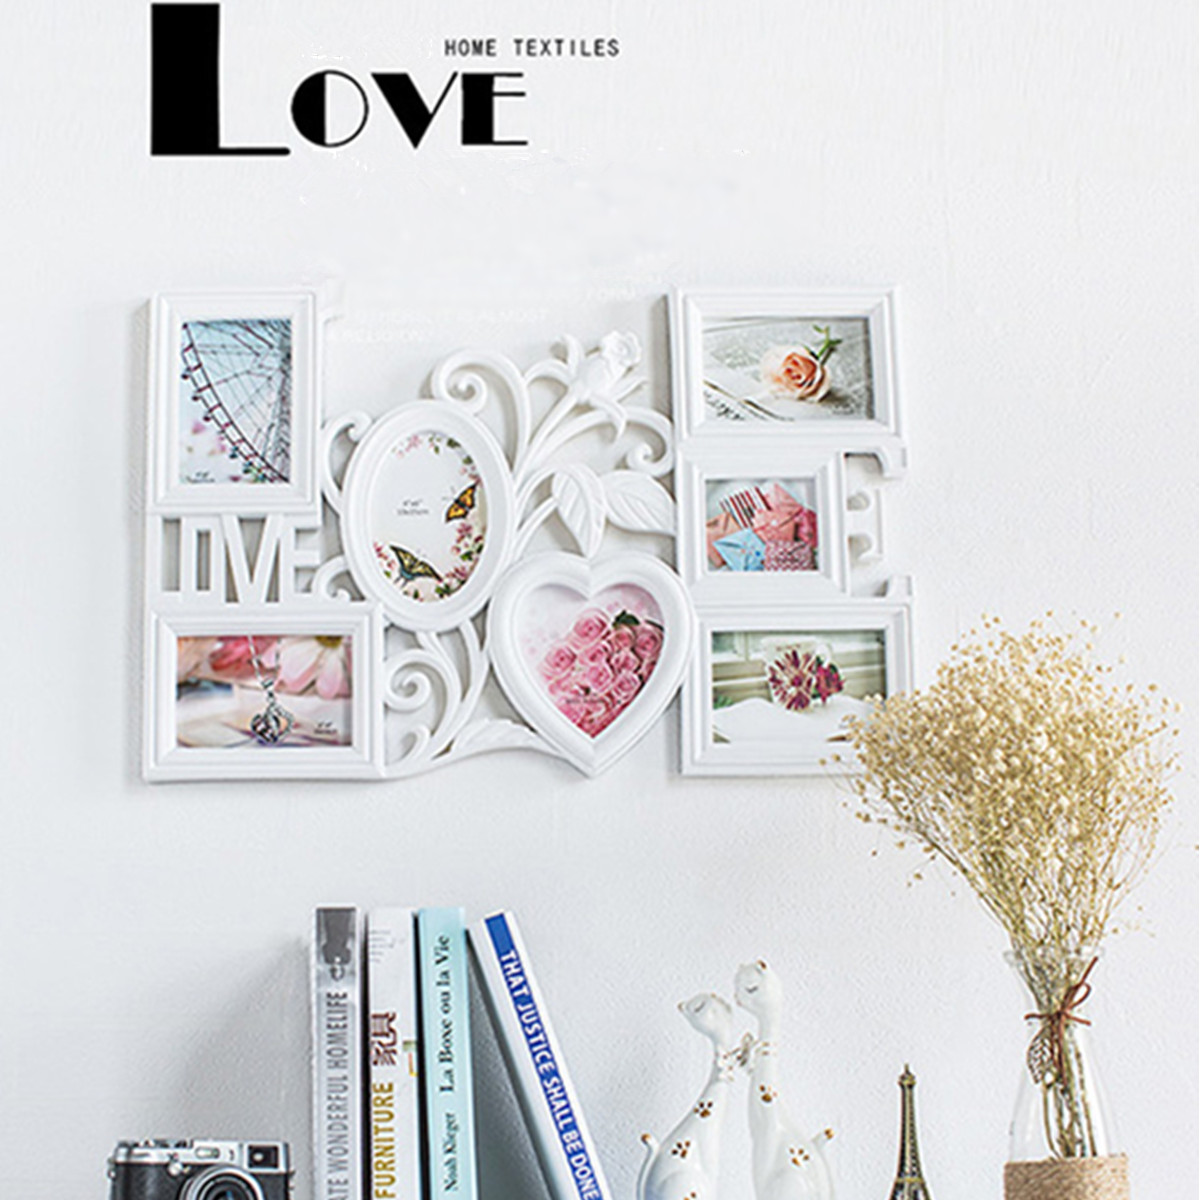 Hollow Family 3D Photo Frame Love Wall Poster Rectangle Photo Frame Hanging DIY Art Picture Frame Art Craft Home Decor White